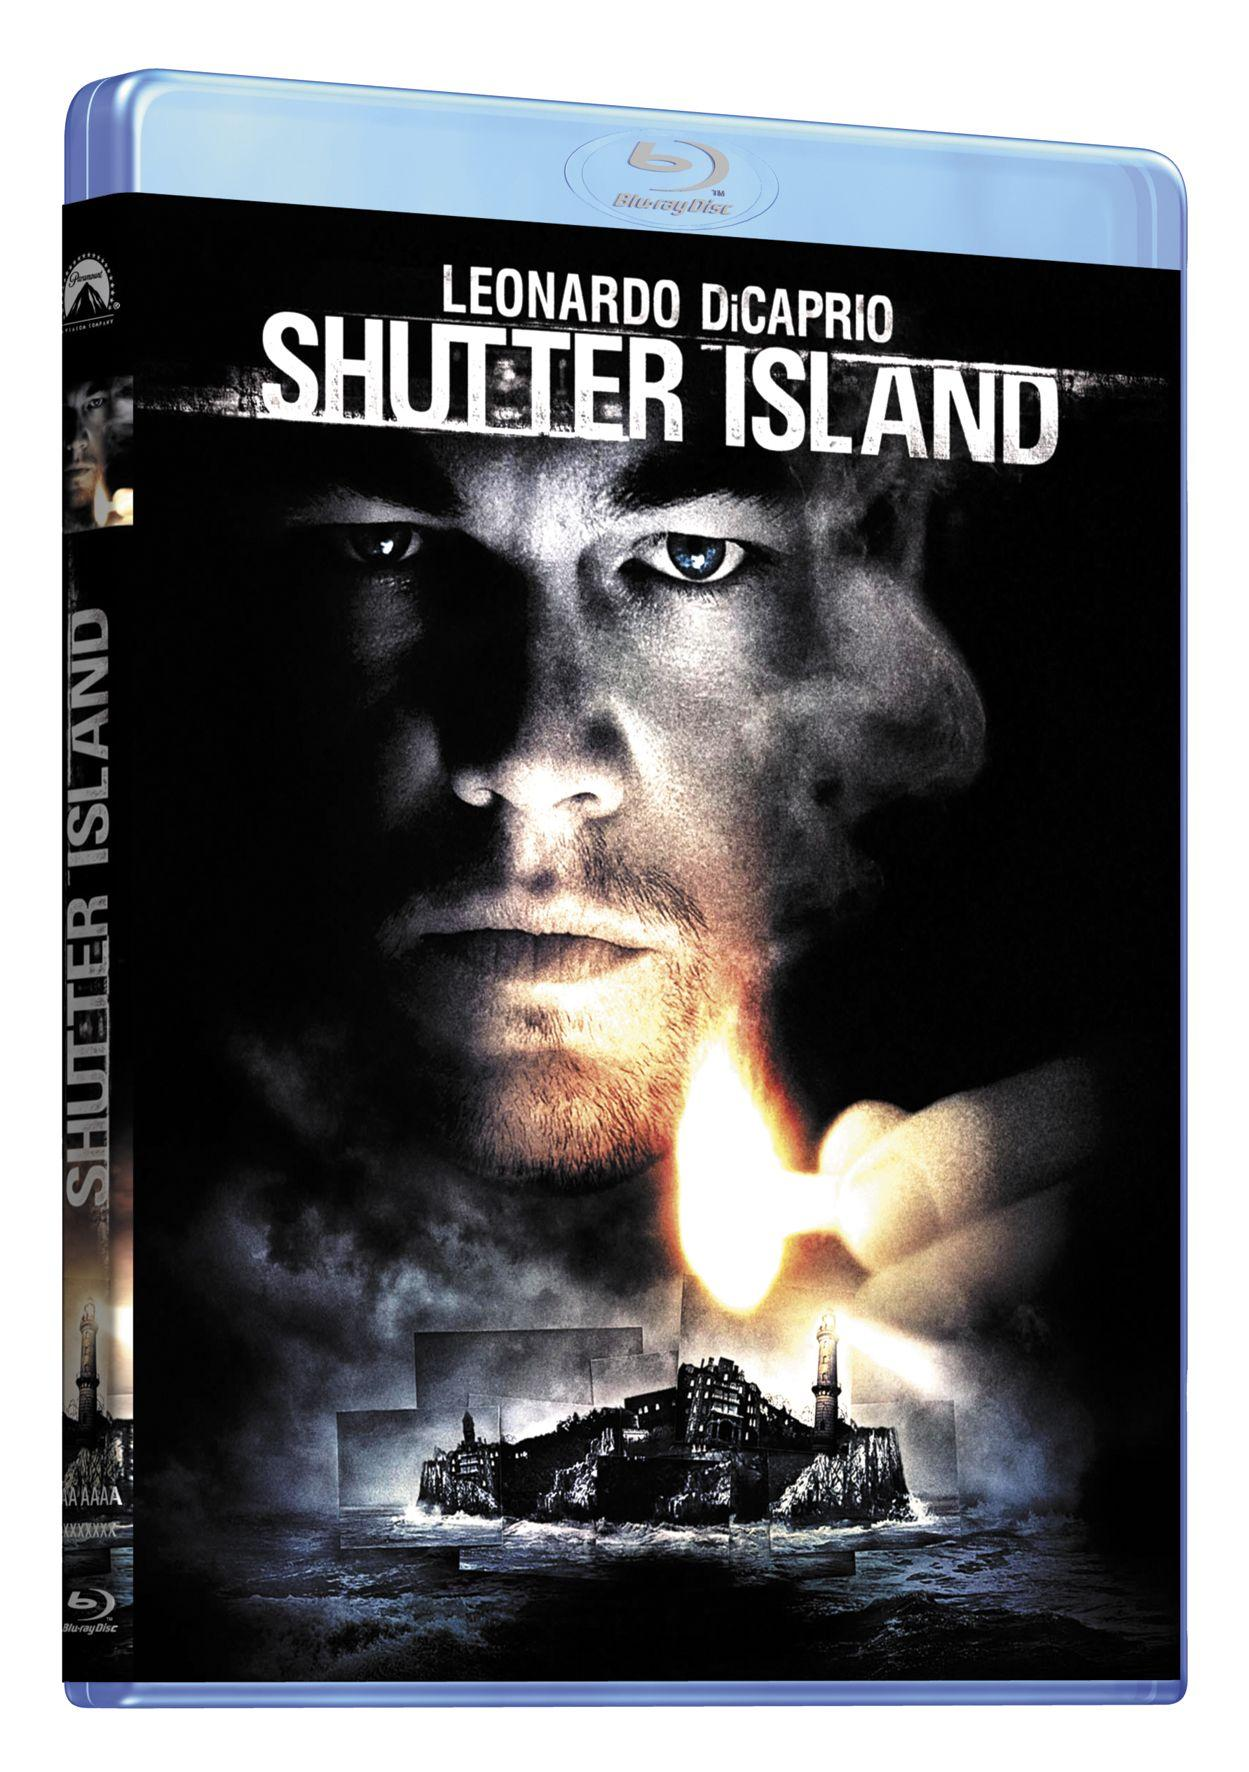 Shutter Island : Blu-ray lumineux pour sombre thriller